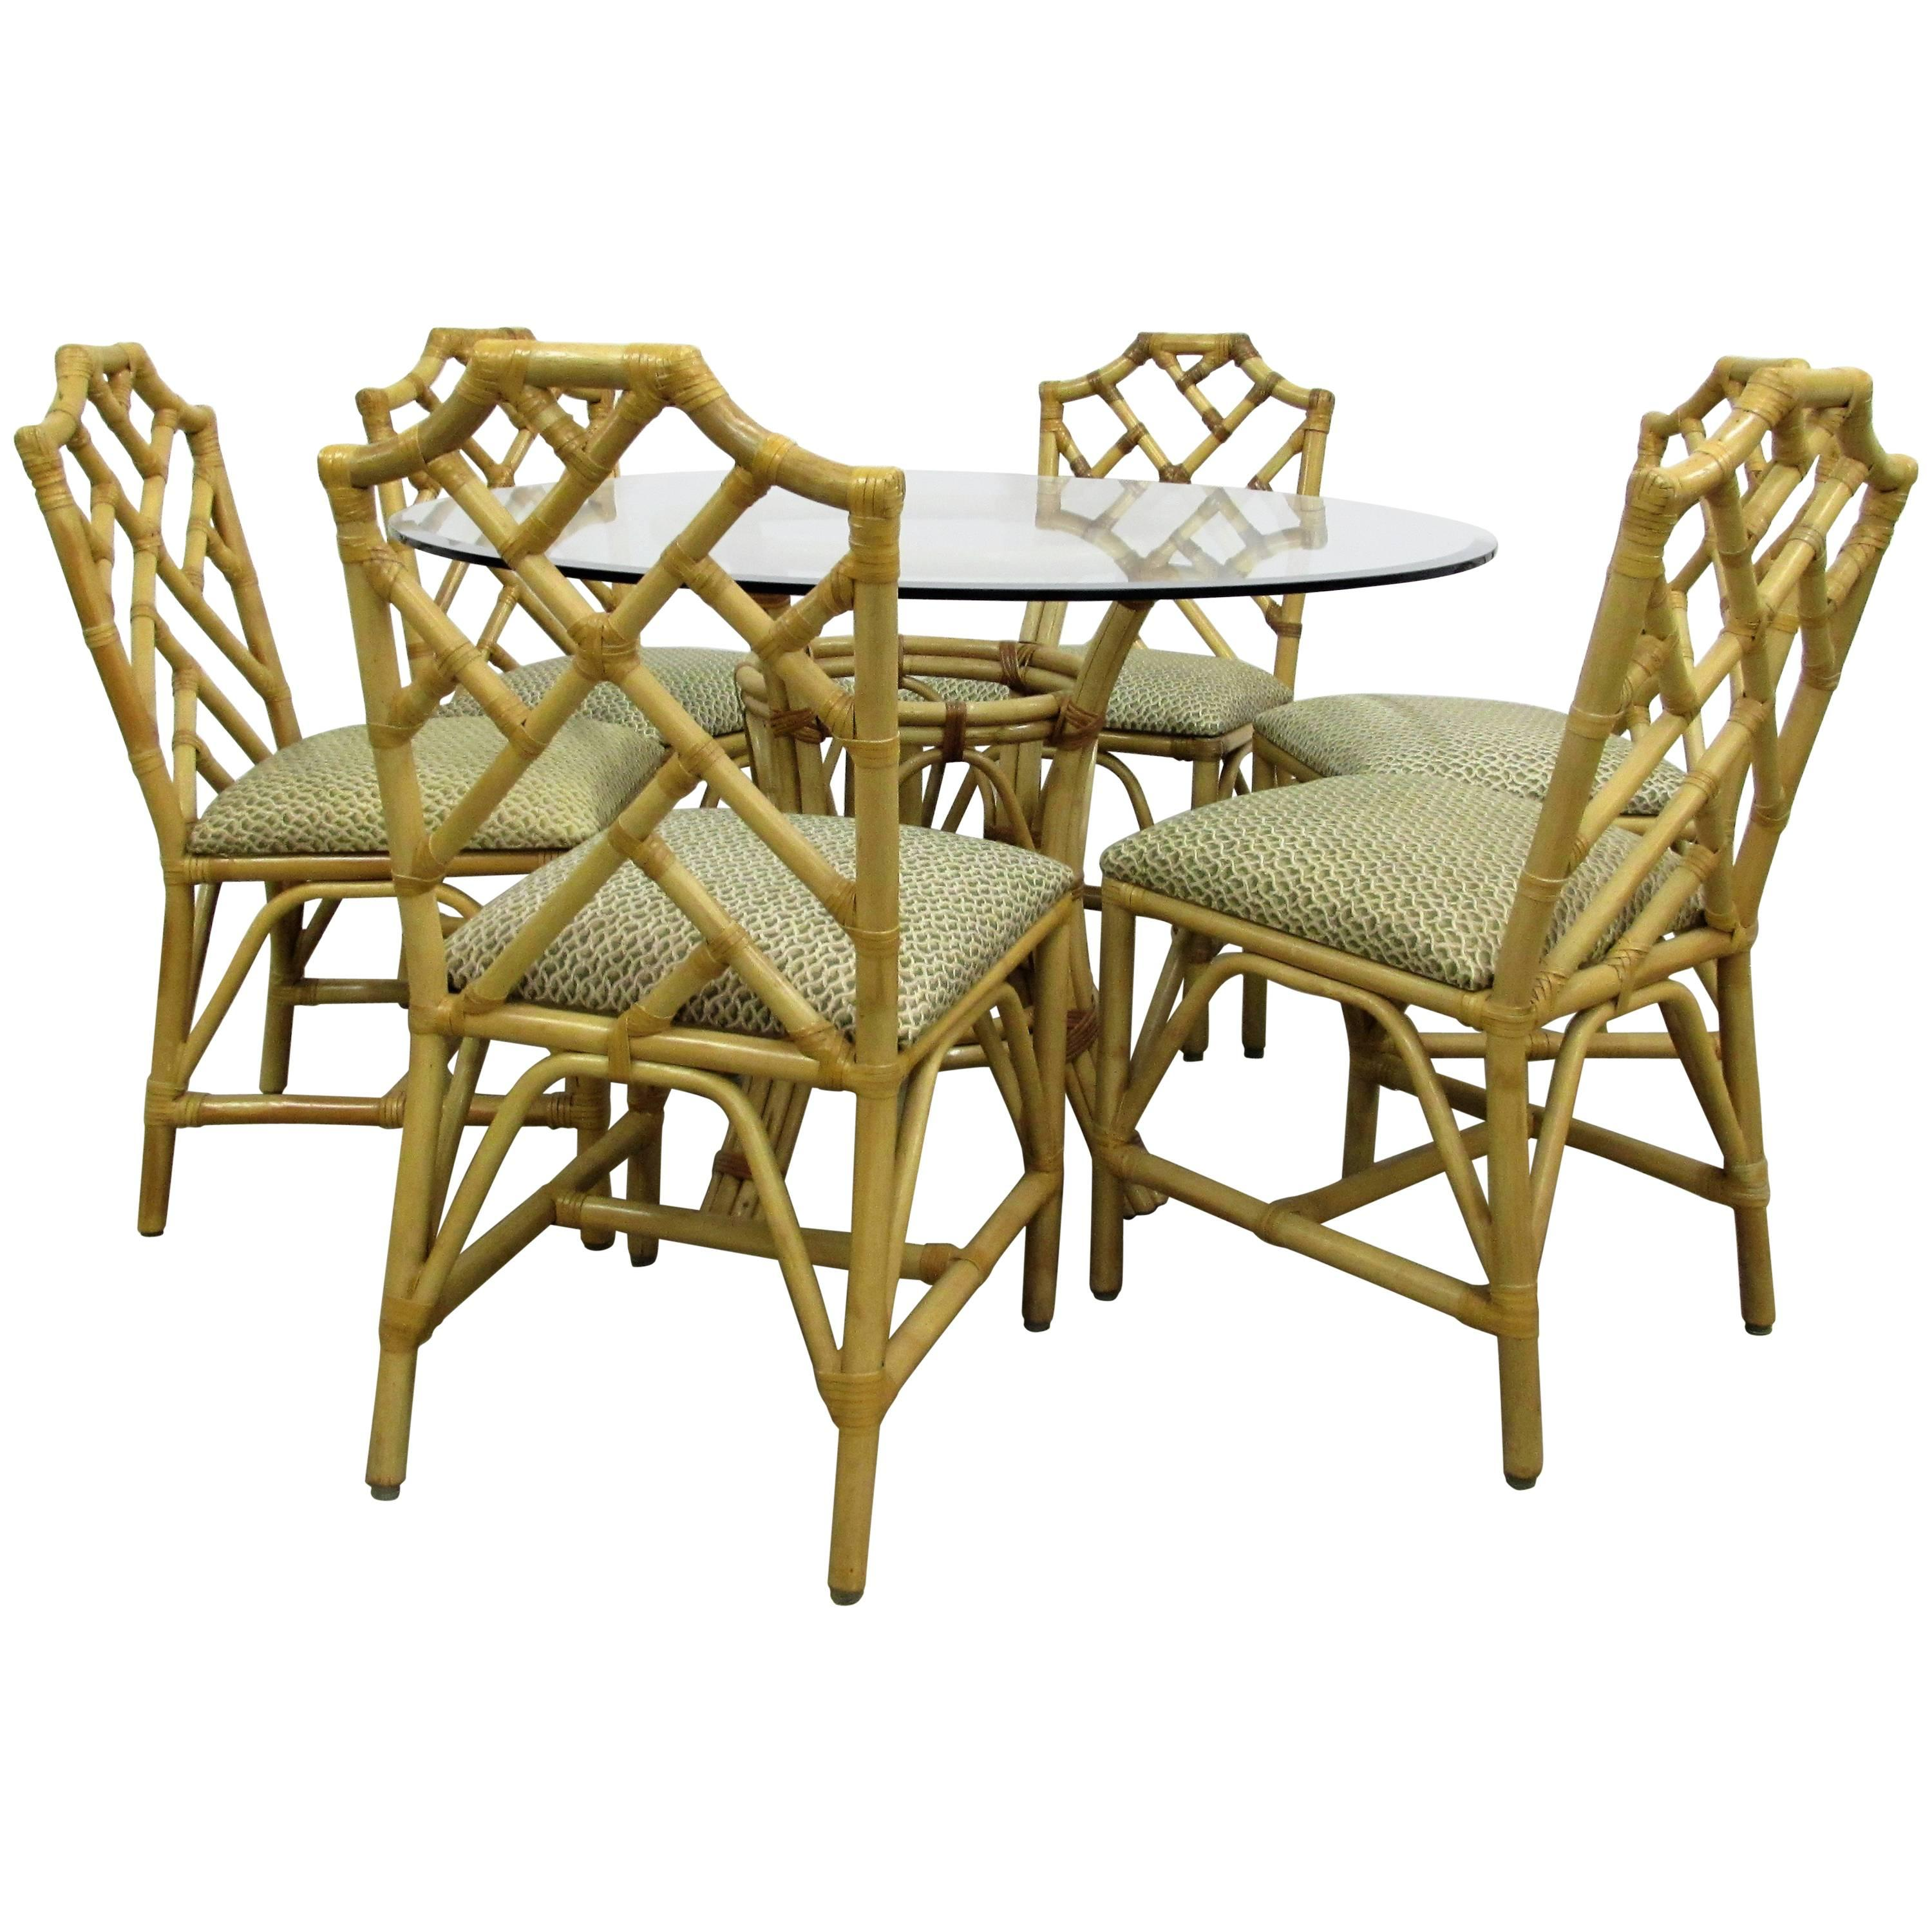 M McGuire Chinese Chippendale Bamboo Rattan Chairs And Round Table Set For  Sale